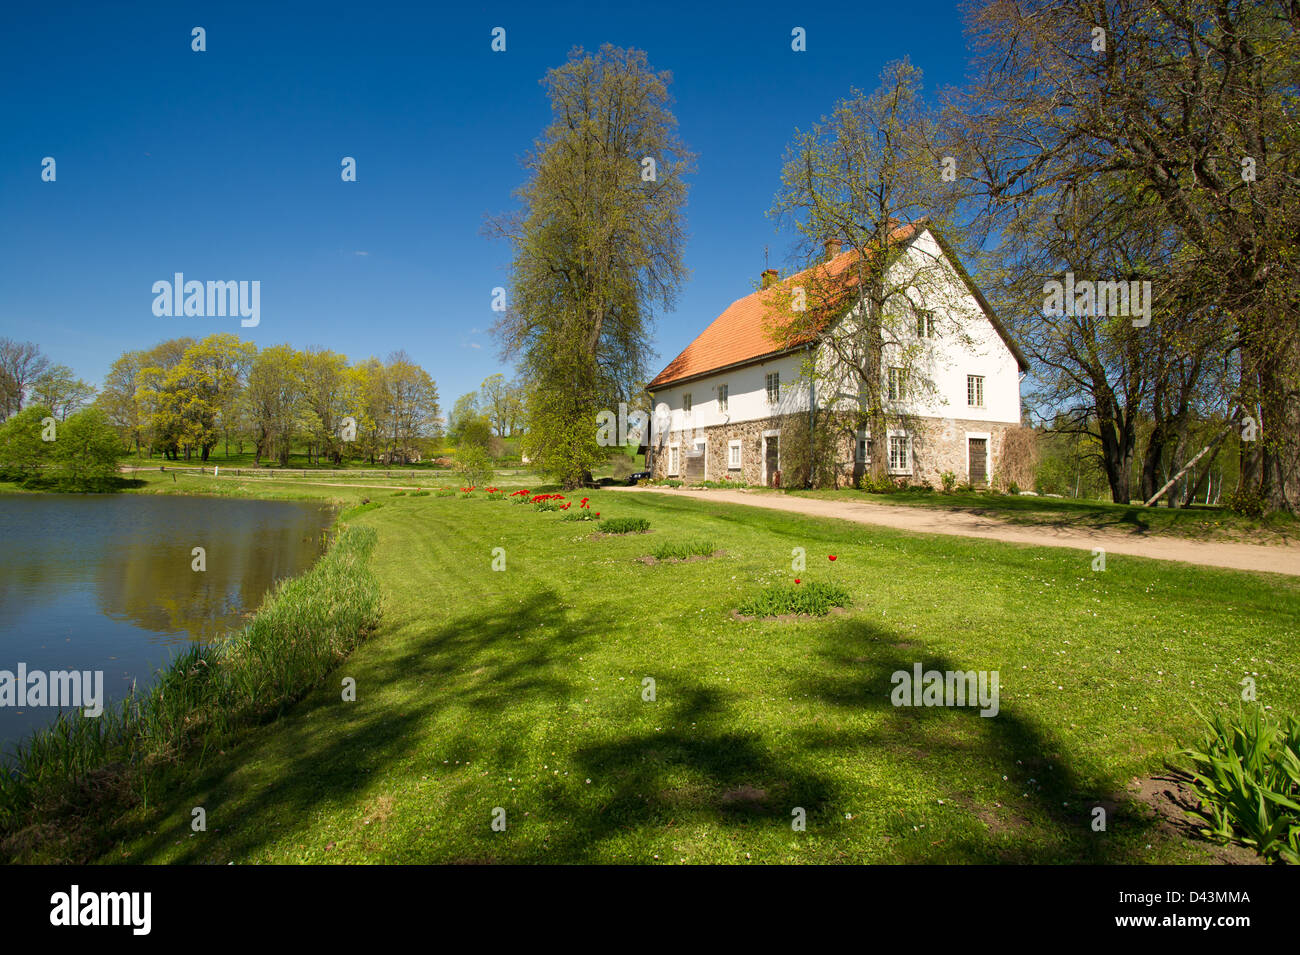 Country house at the lake, a cosiness and silence. - Stock Image